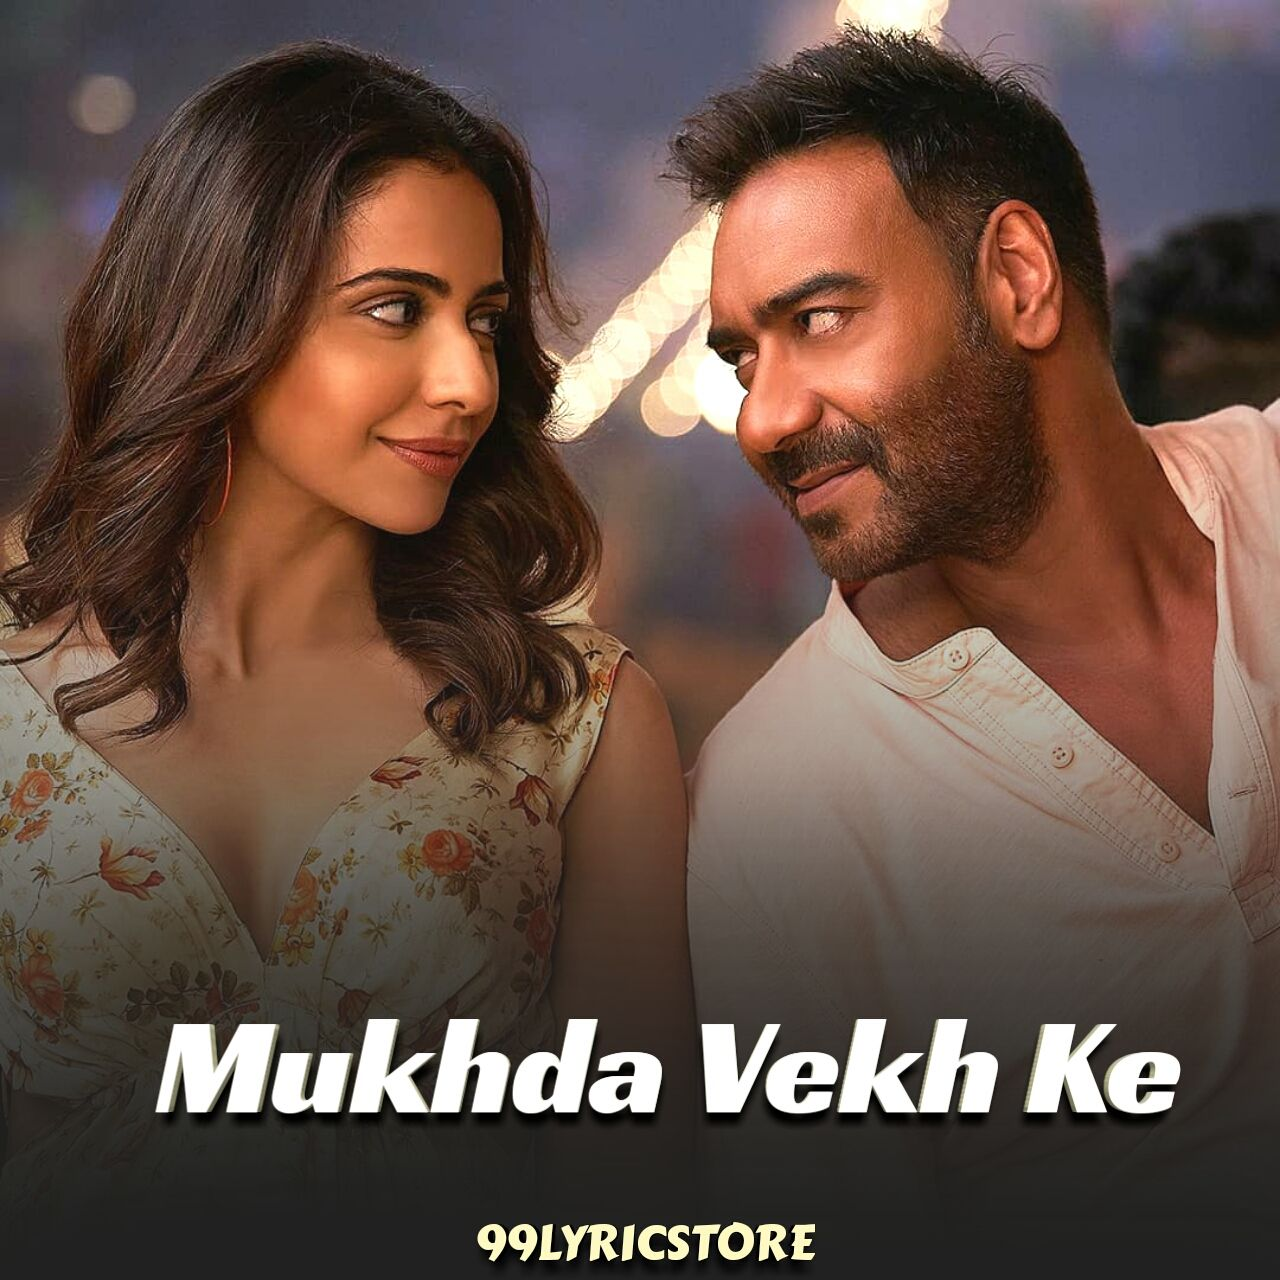 Mukhda Vekh Ke Punjabi Song Lyrics from bollywood movie De De Pyaar De sung by Dhvani Bhanushali and Mika Singh